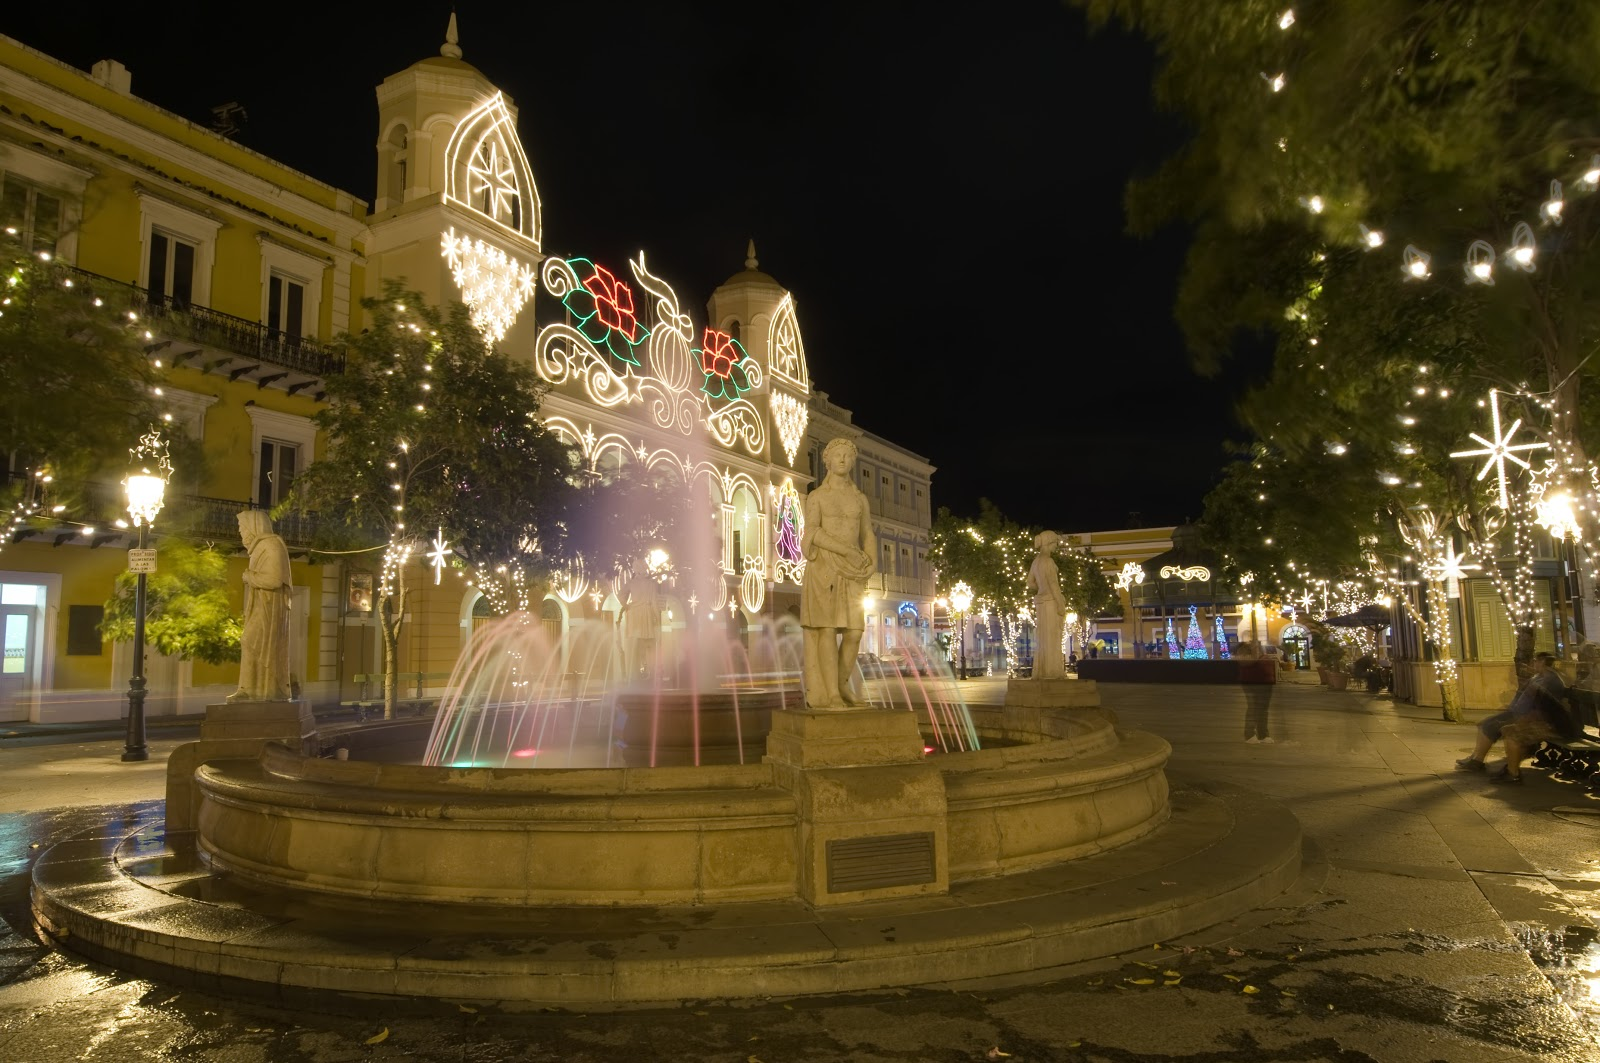 A Fountain among Christmas Light in a San Juan public square.